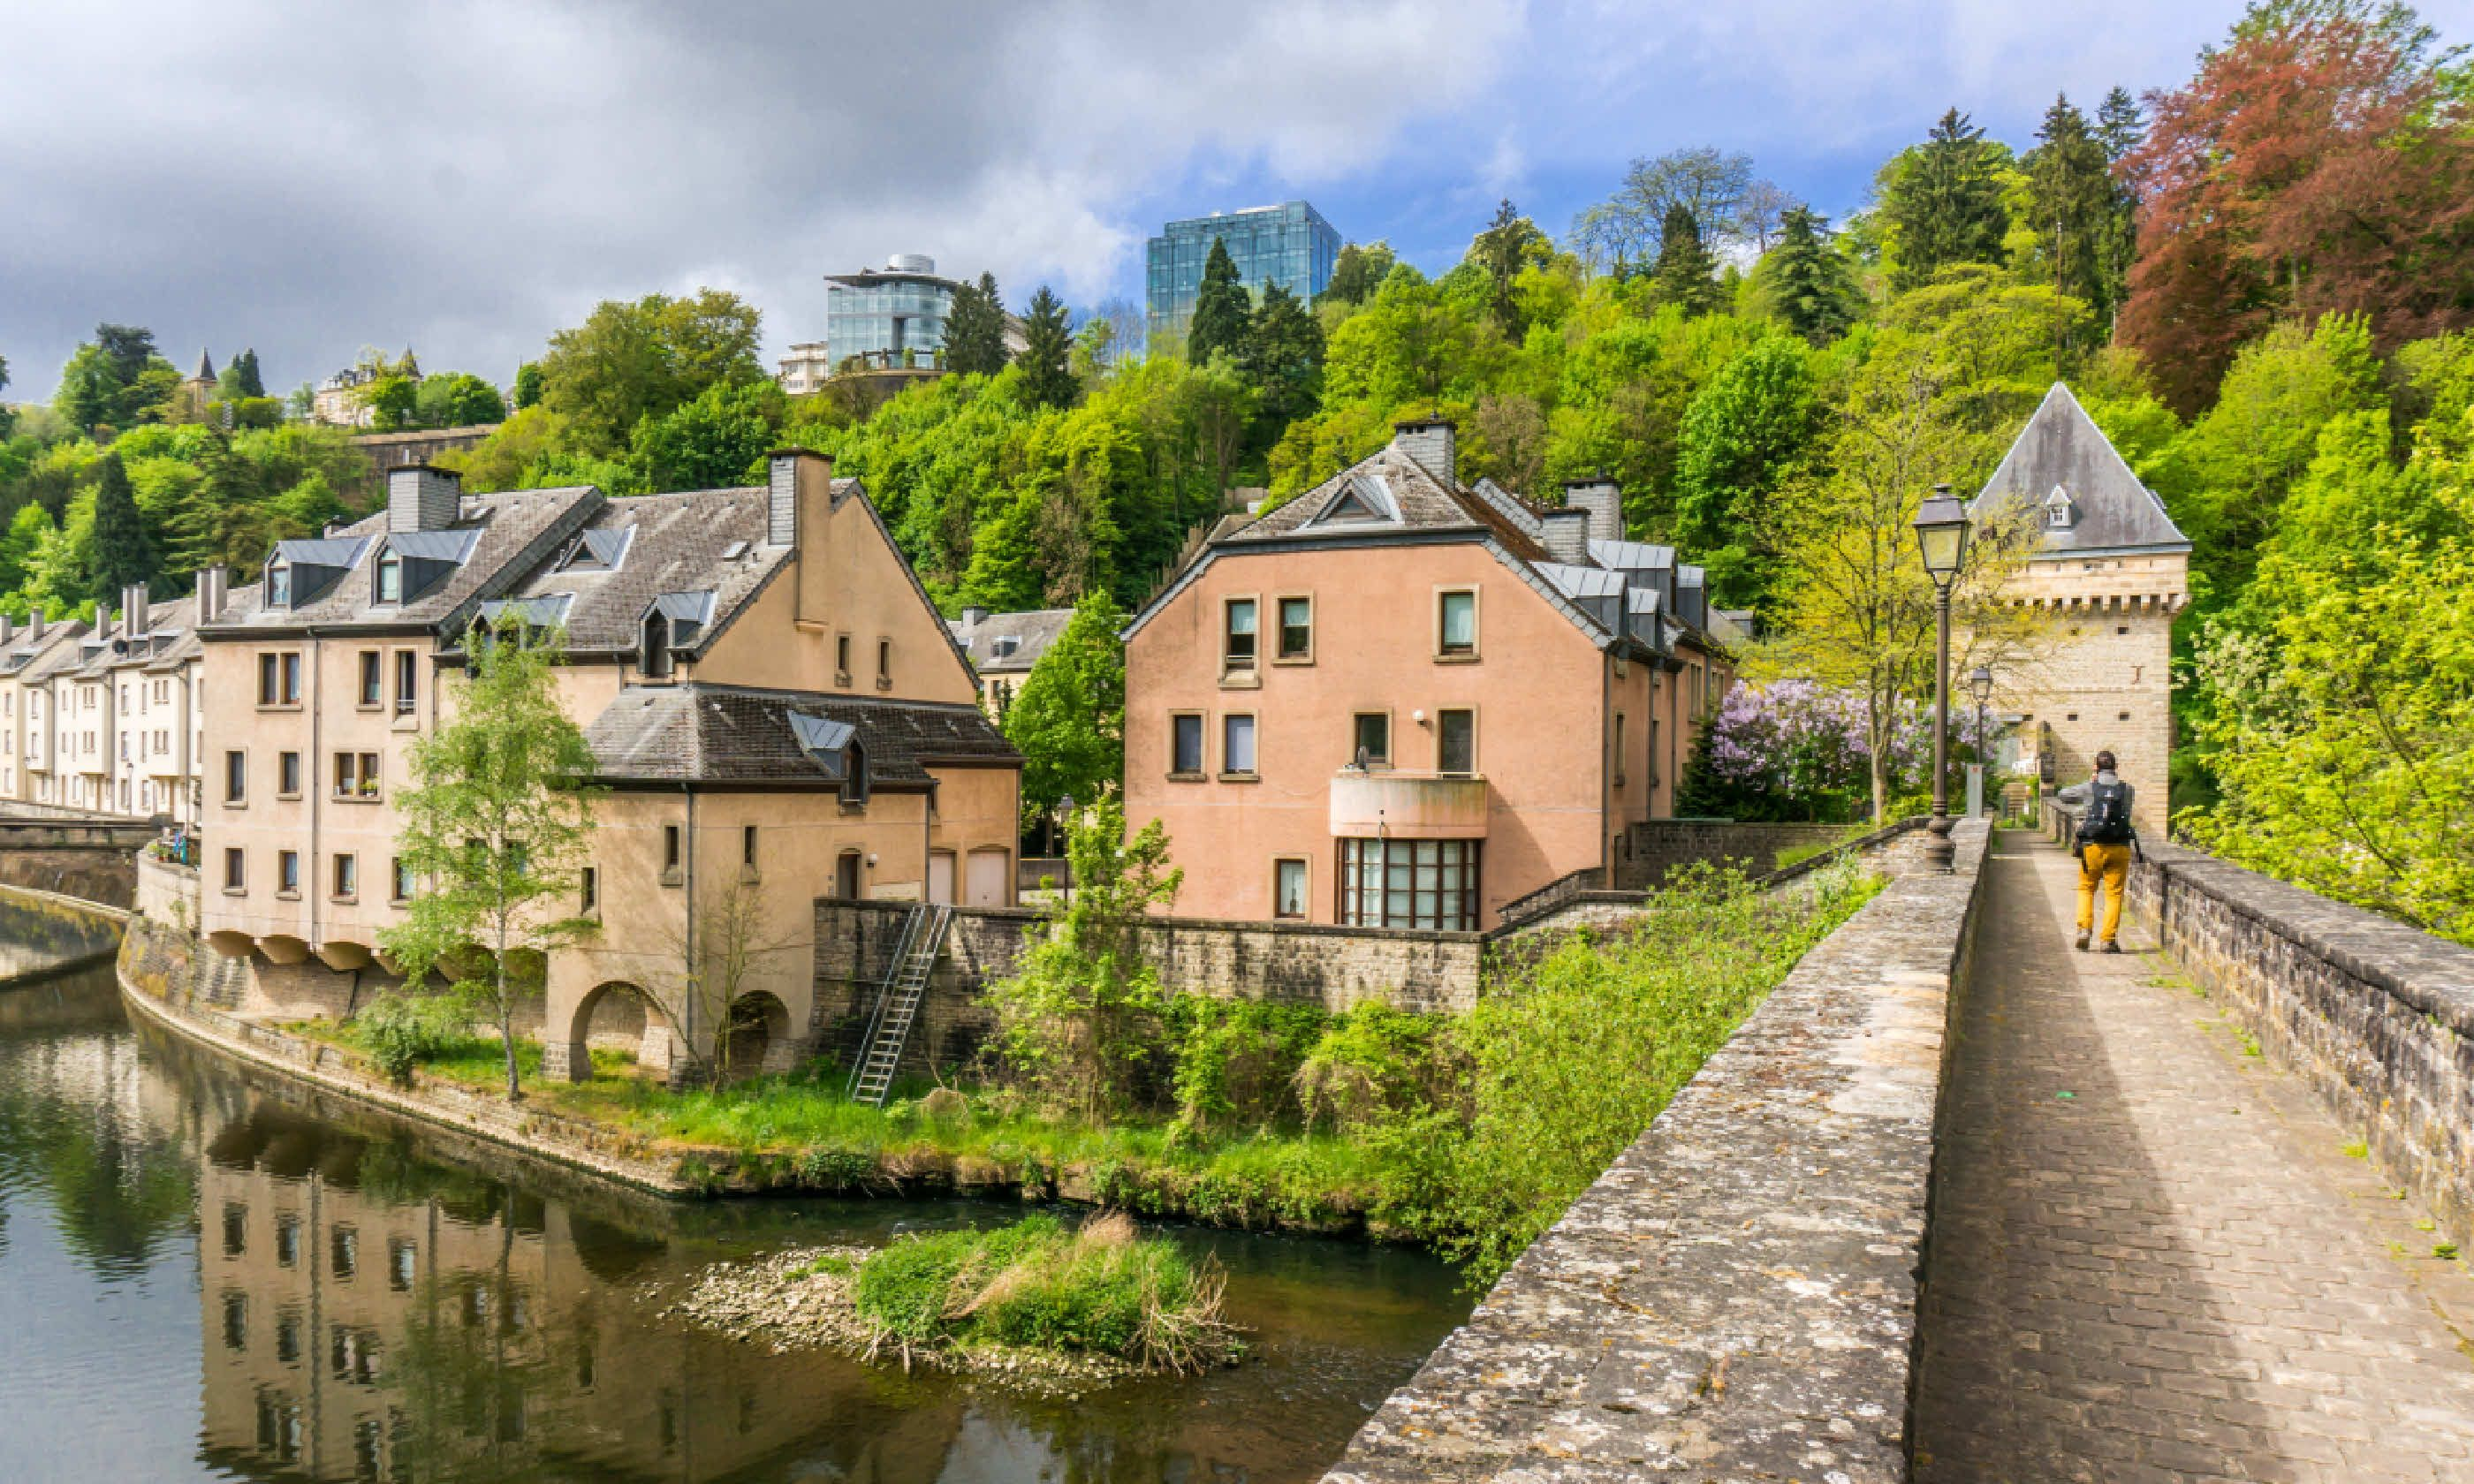 Short break in luxembourg city wanderlust houses by the alzette river shutterstock altavistaventures Choice Image